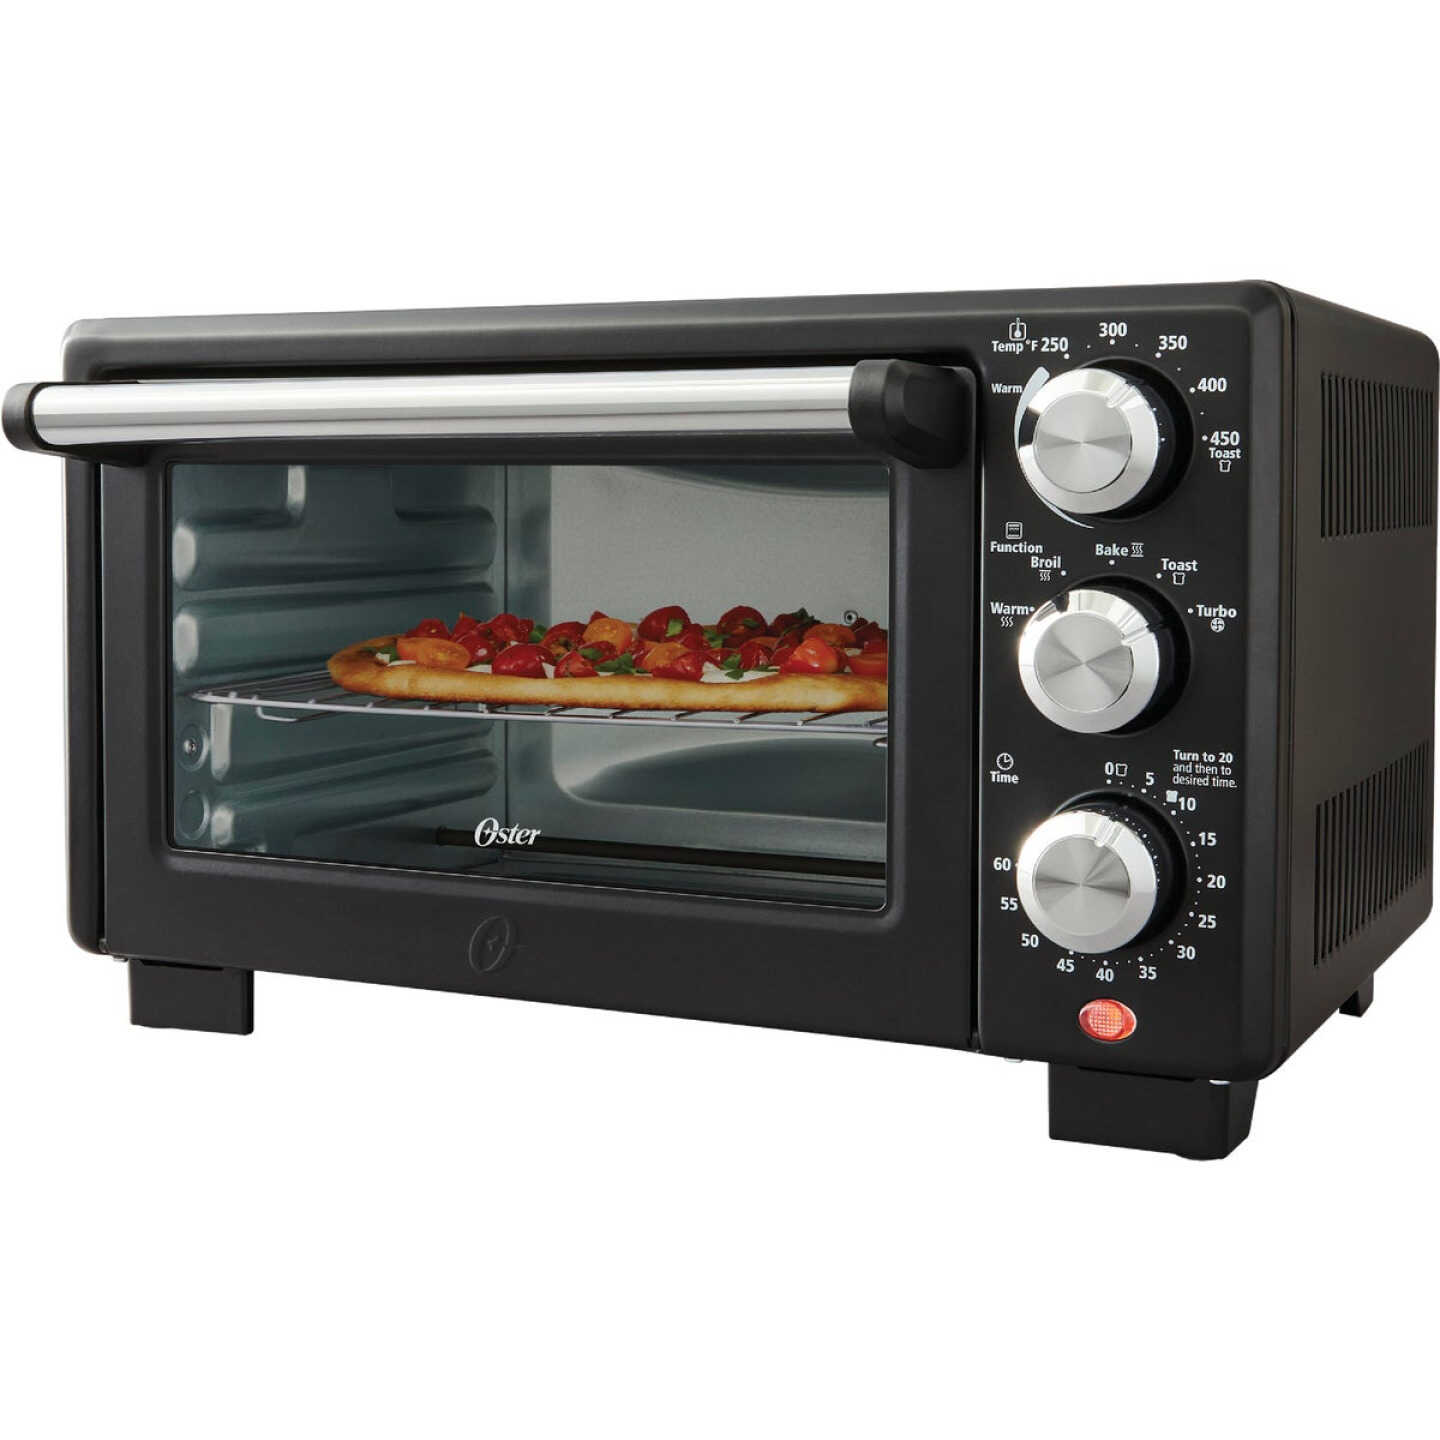 Oster 4-Slice Matte Black Compact Toaster Oven Image 1